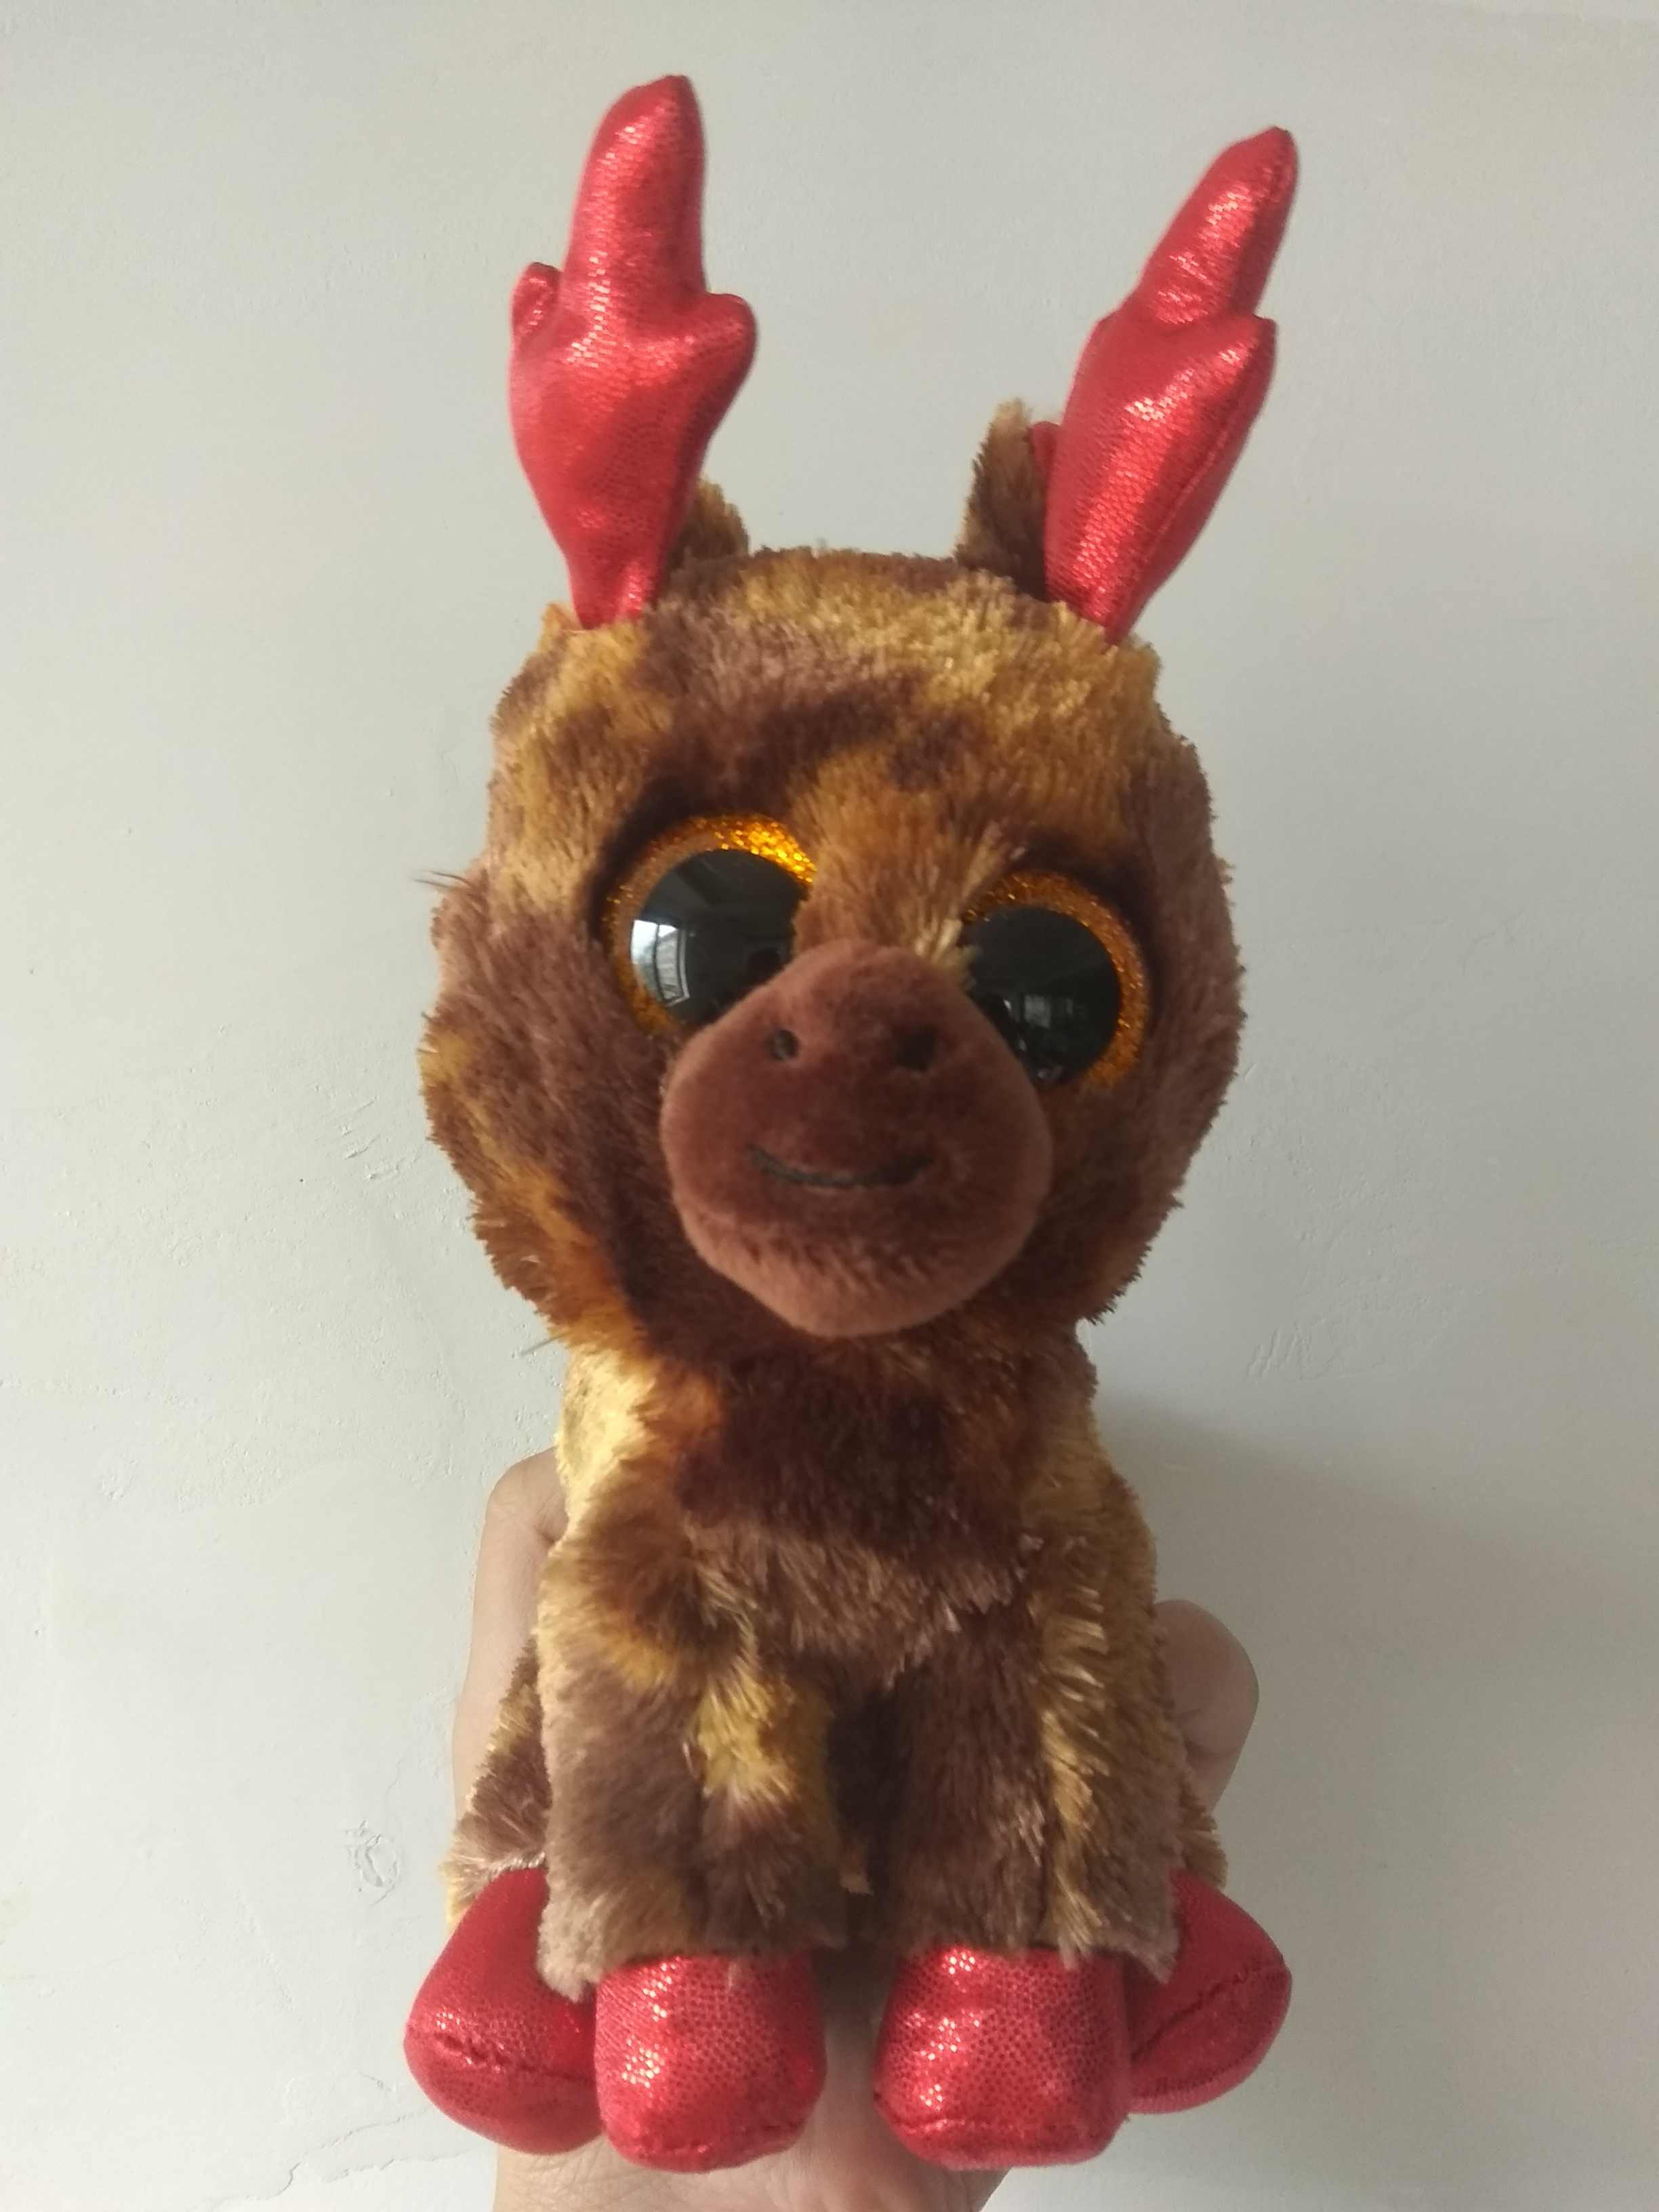 28b18fc2833 Detail Feedback Questions about 10 15CM Original Ty Beanie Boos Original Big  Eyes Plush Stuffed Animal reindeer Kids Toy Birthday Gift Plush Toy  Christmas ...